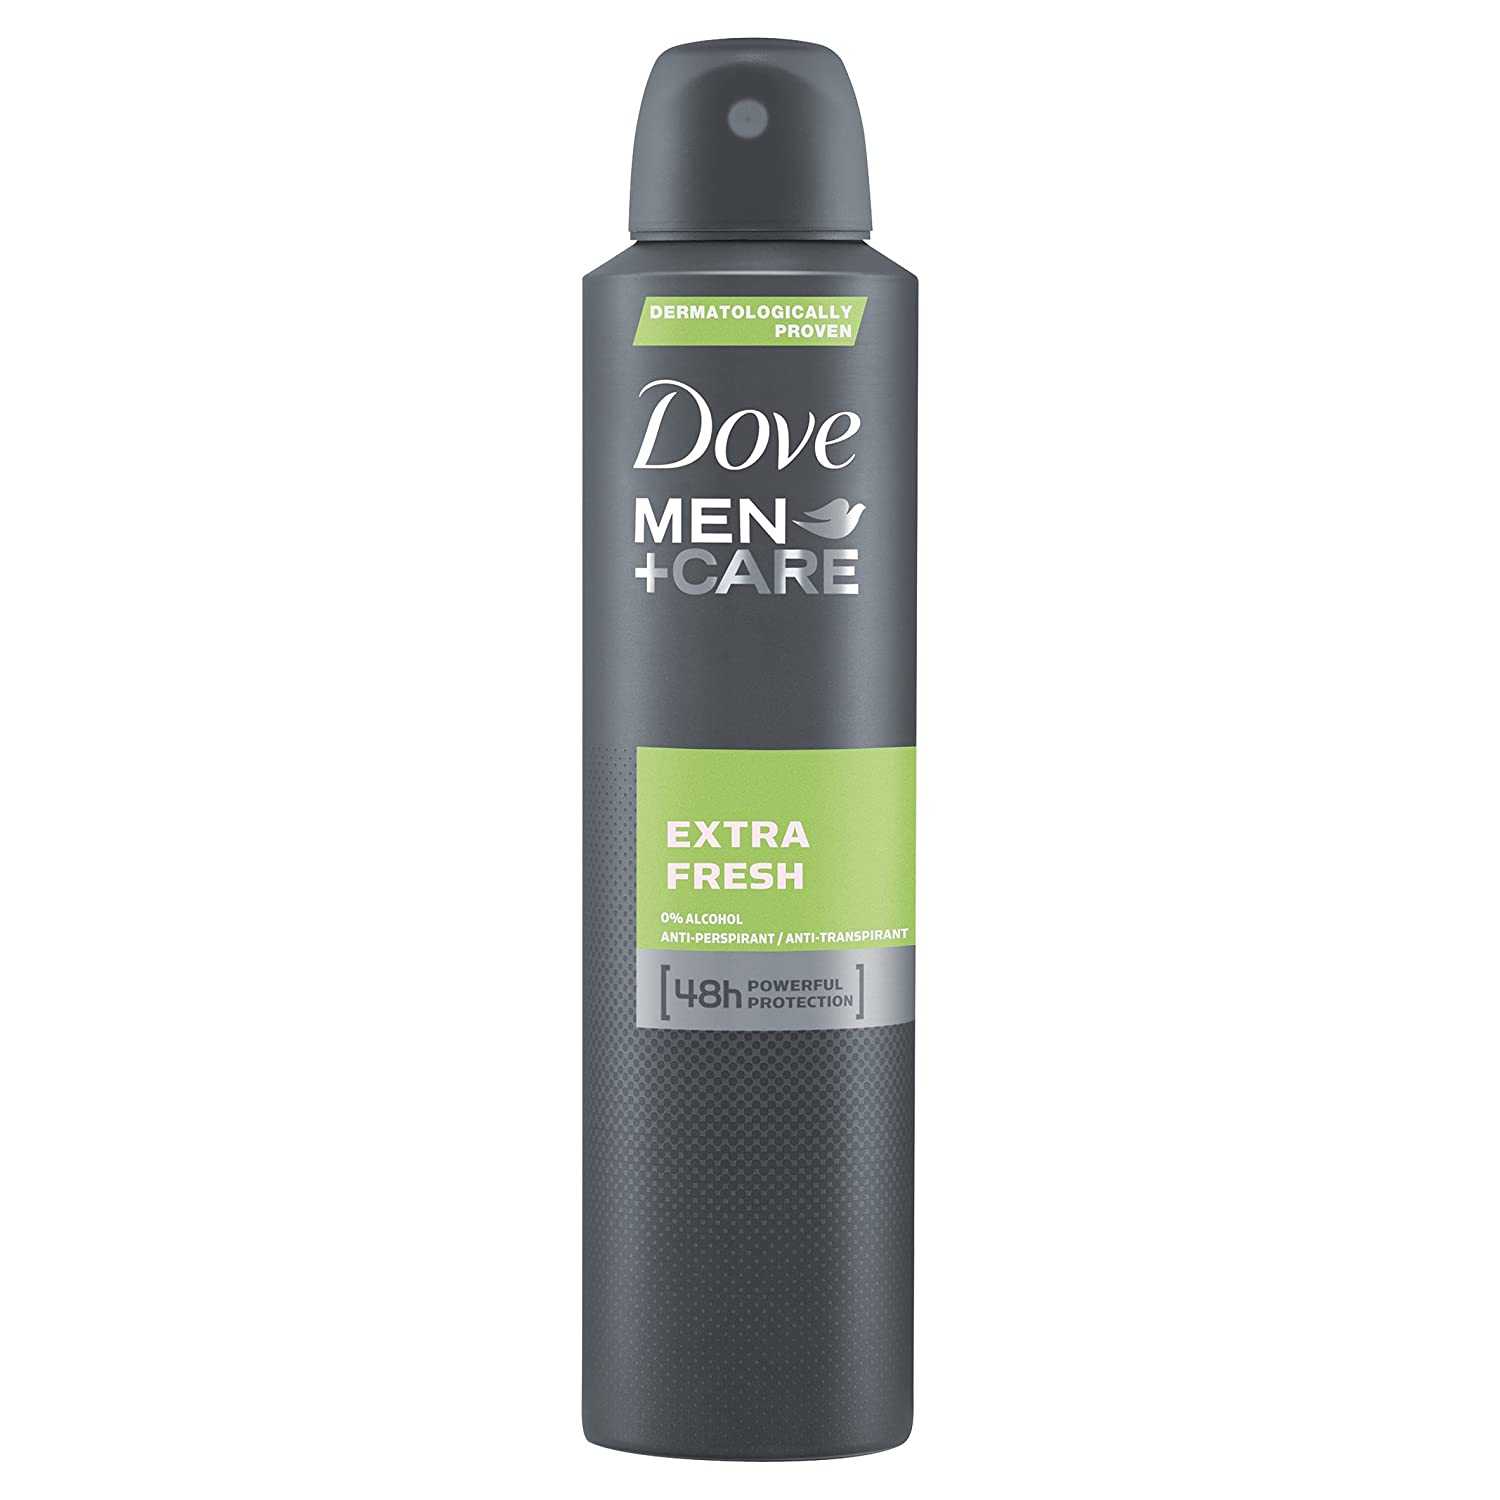 Dove Men + Care Extra Fresh Aerosol AntiPerspirant Deodorant, 250 ml, Pack of 3 Unilever 8762902